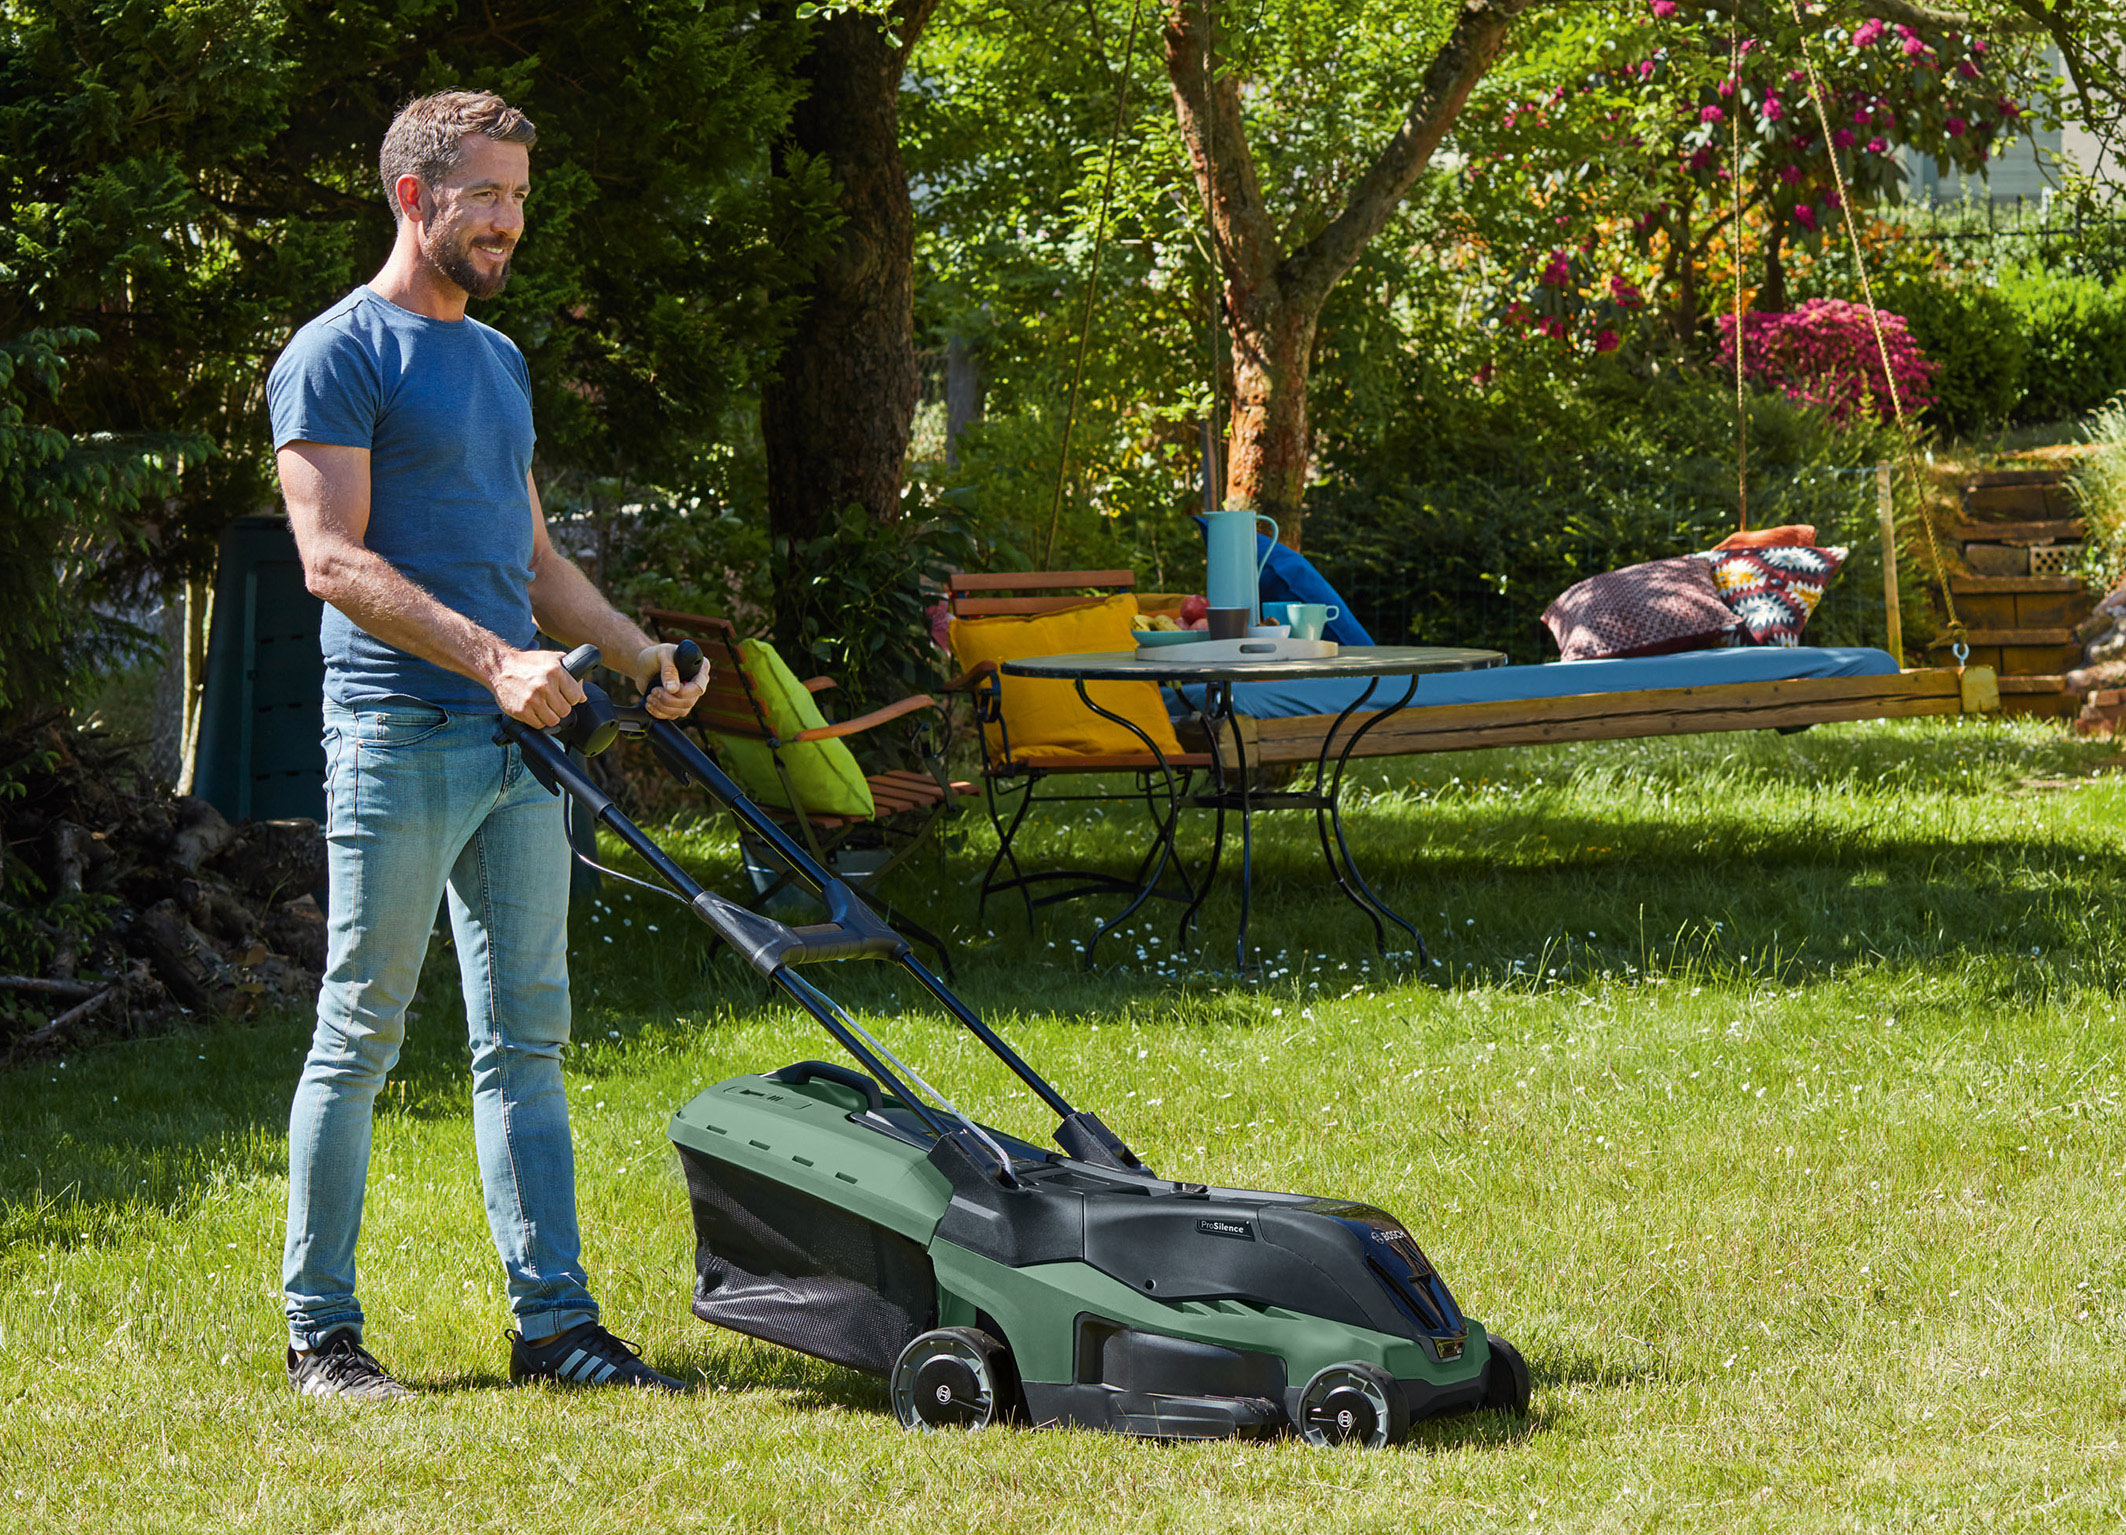 Stress-free lawn care now cordless too: The new ProSilence Rotak series from Bosch